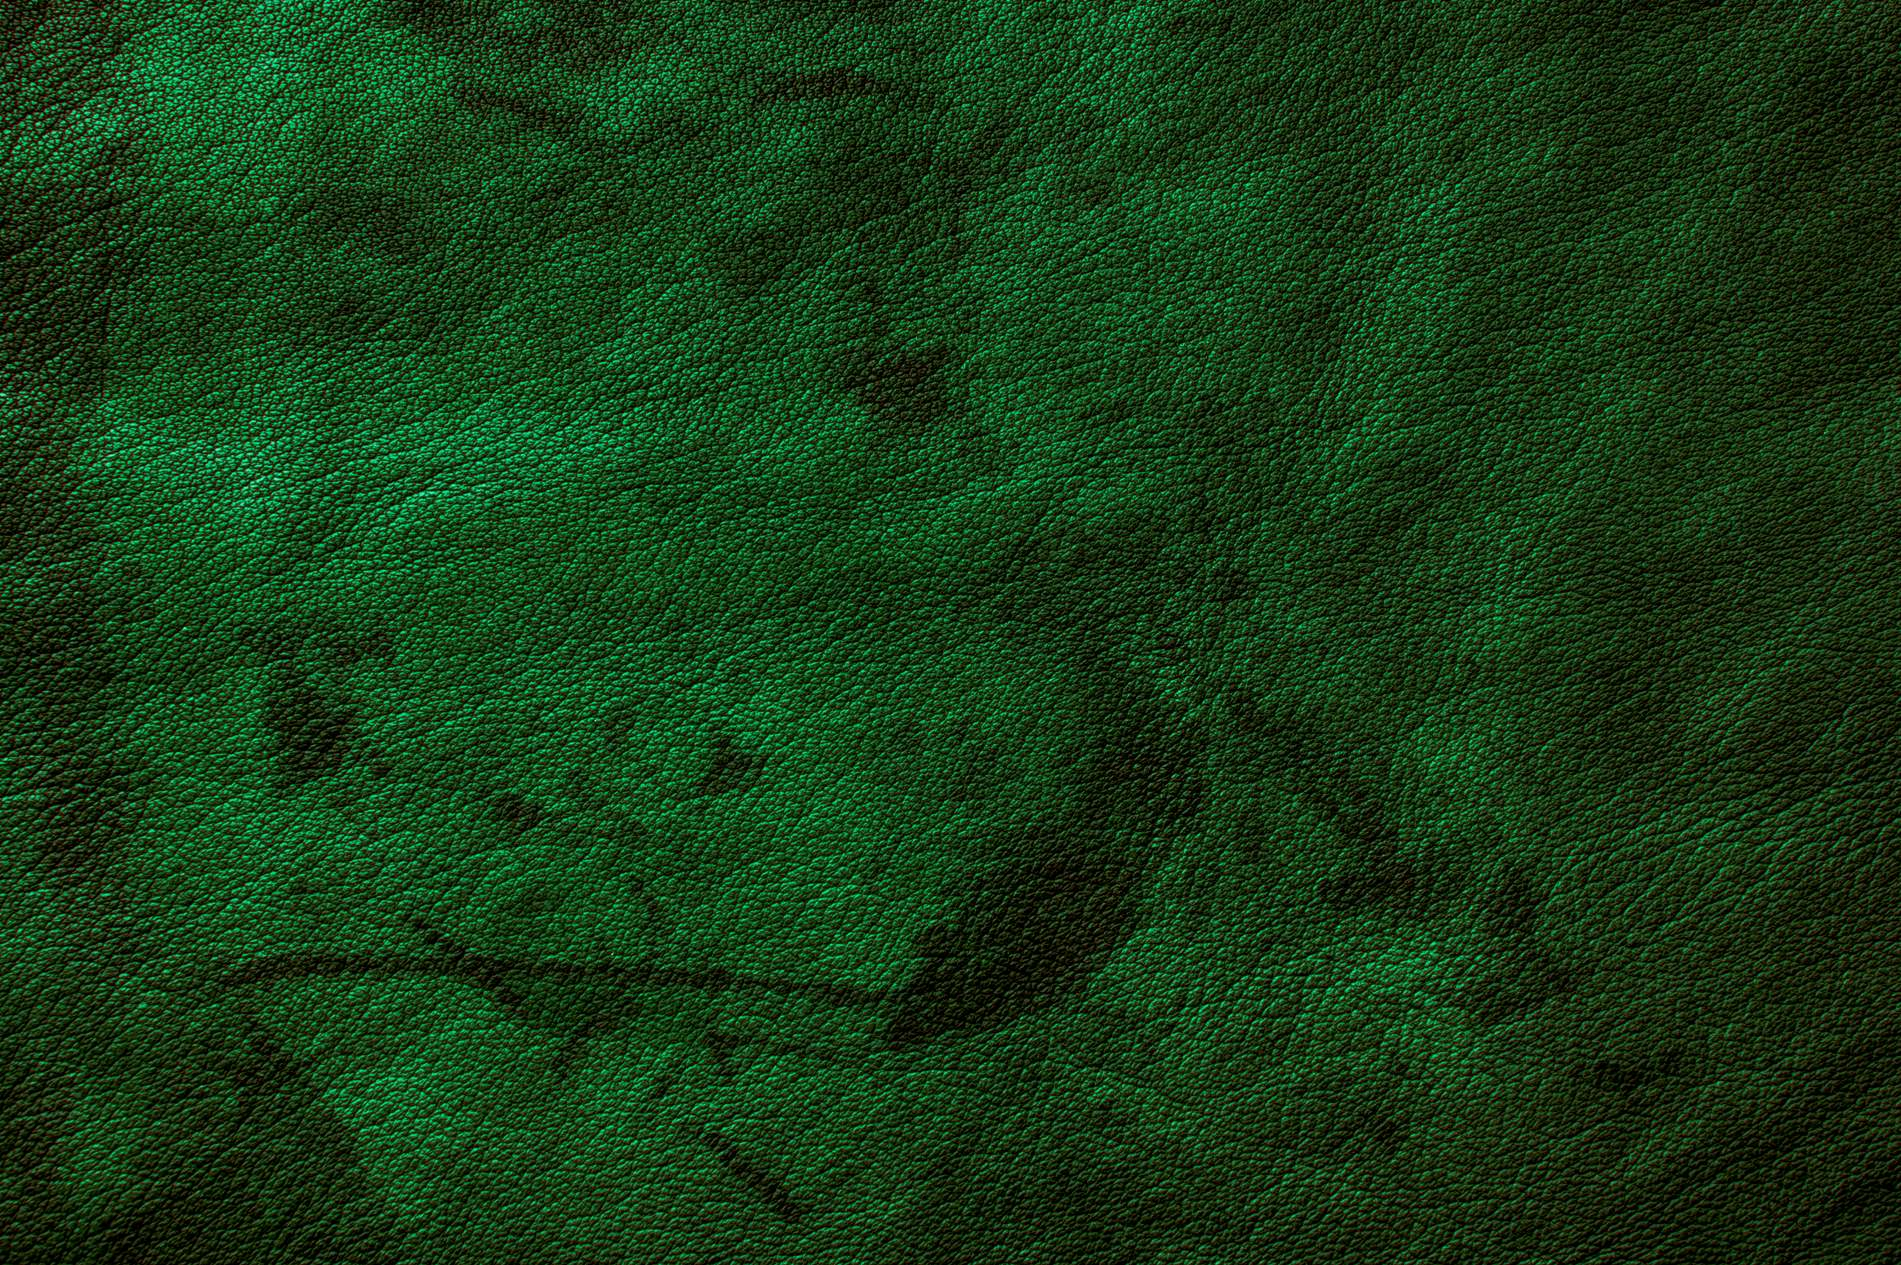 Green Grunge Leather Texture Background - PhotoHDX